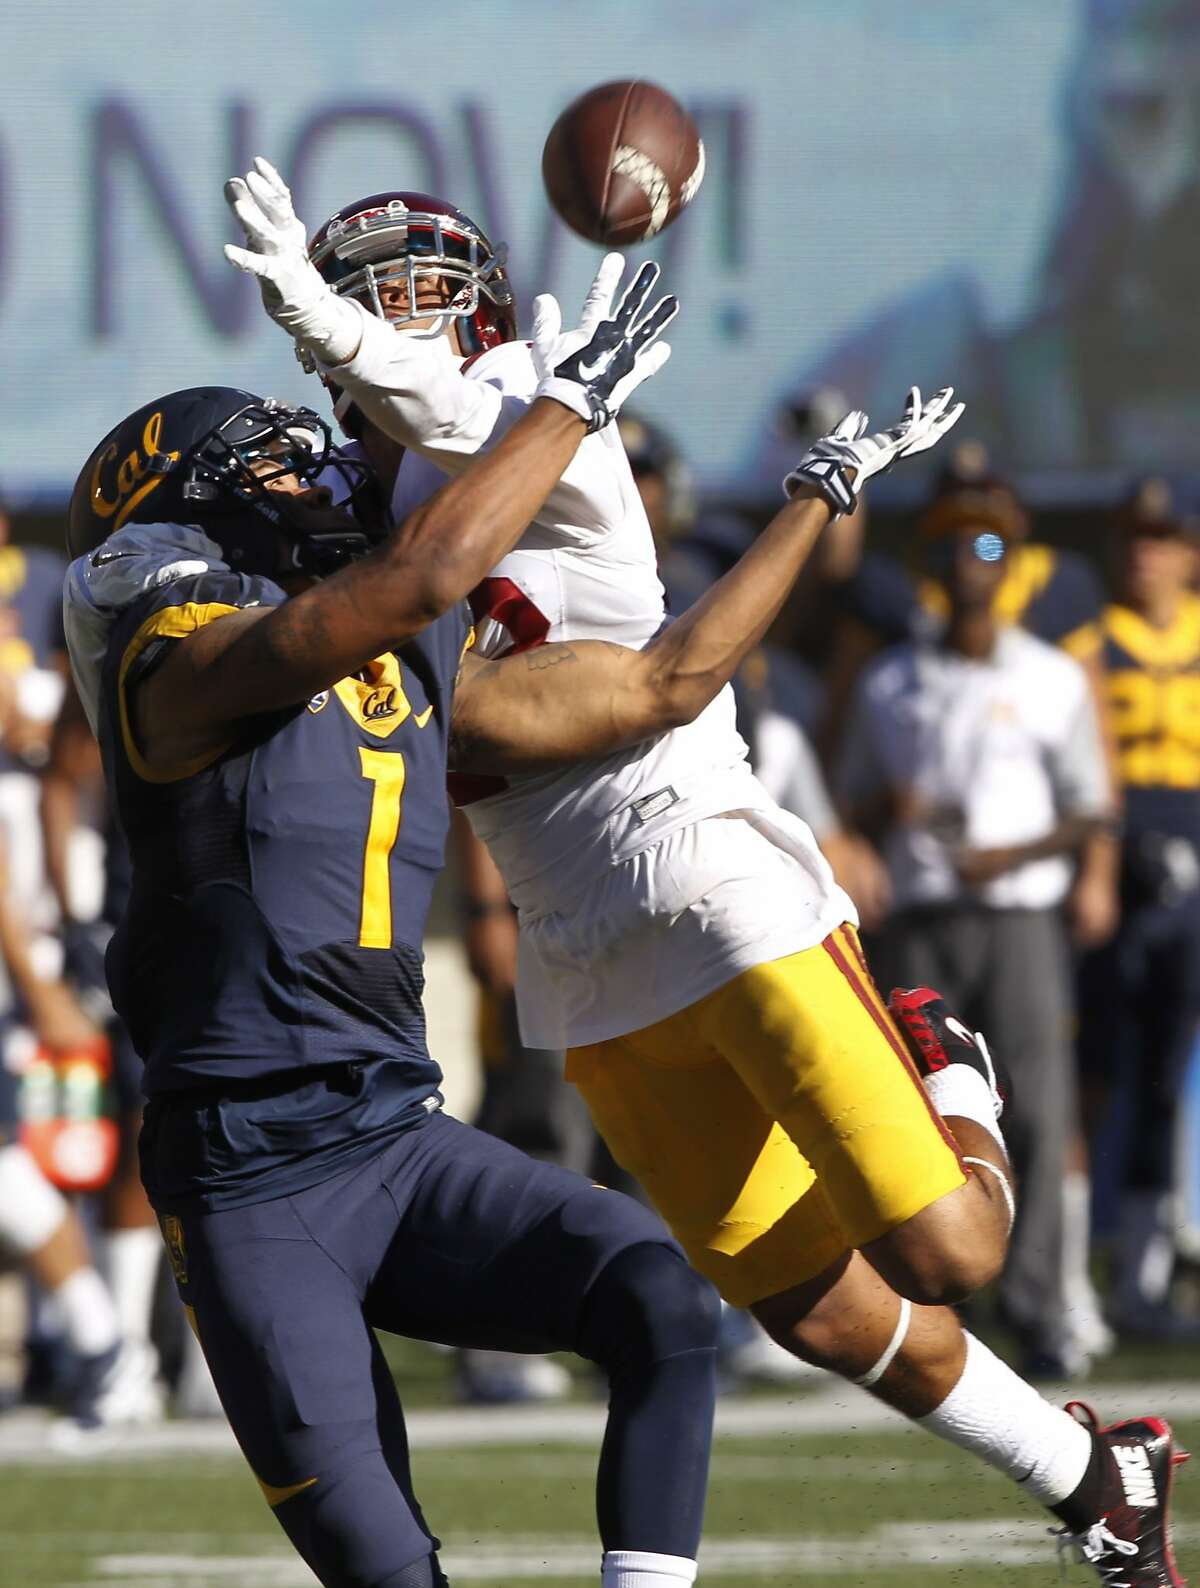 A pass interference call on USC's Jonathan Lockett (right) on Cal receiver Bryce Treggs helps set up a Bears touchdown in the 4th quarter of the Cal Bears game against the USC Trojans at Memorial Stadium in Berkeley, Calif. on Saturday, Oct. 31, 2015.